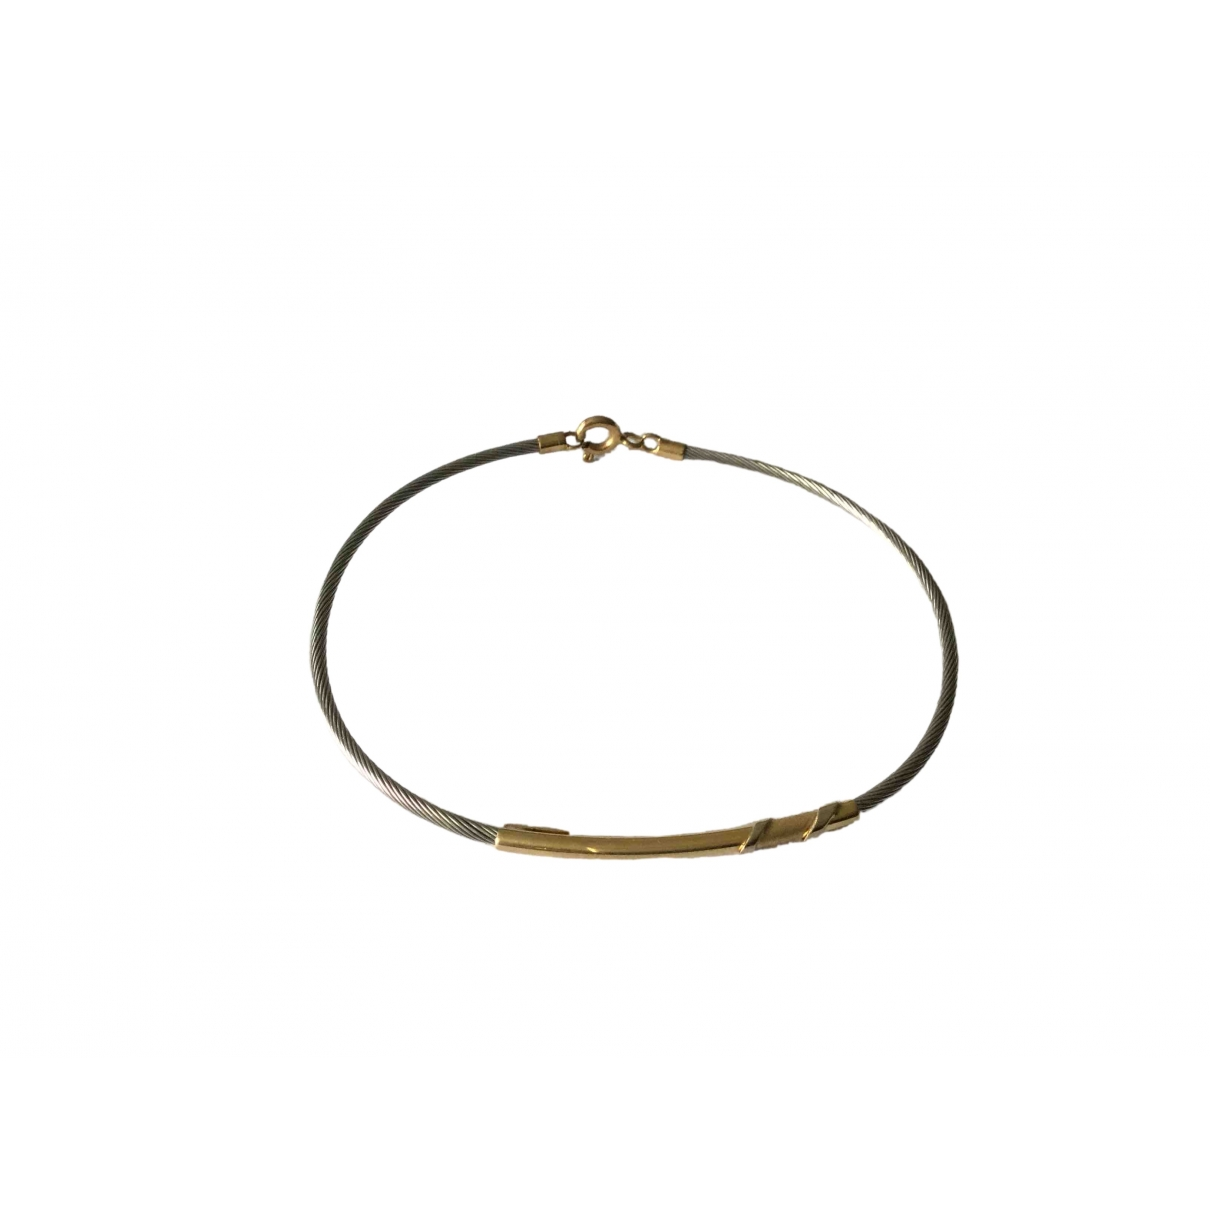 Non Signe / Unsigned Jonc Armband in Gelbgold